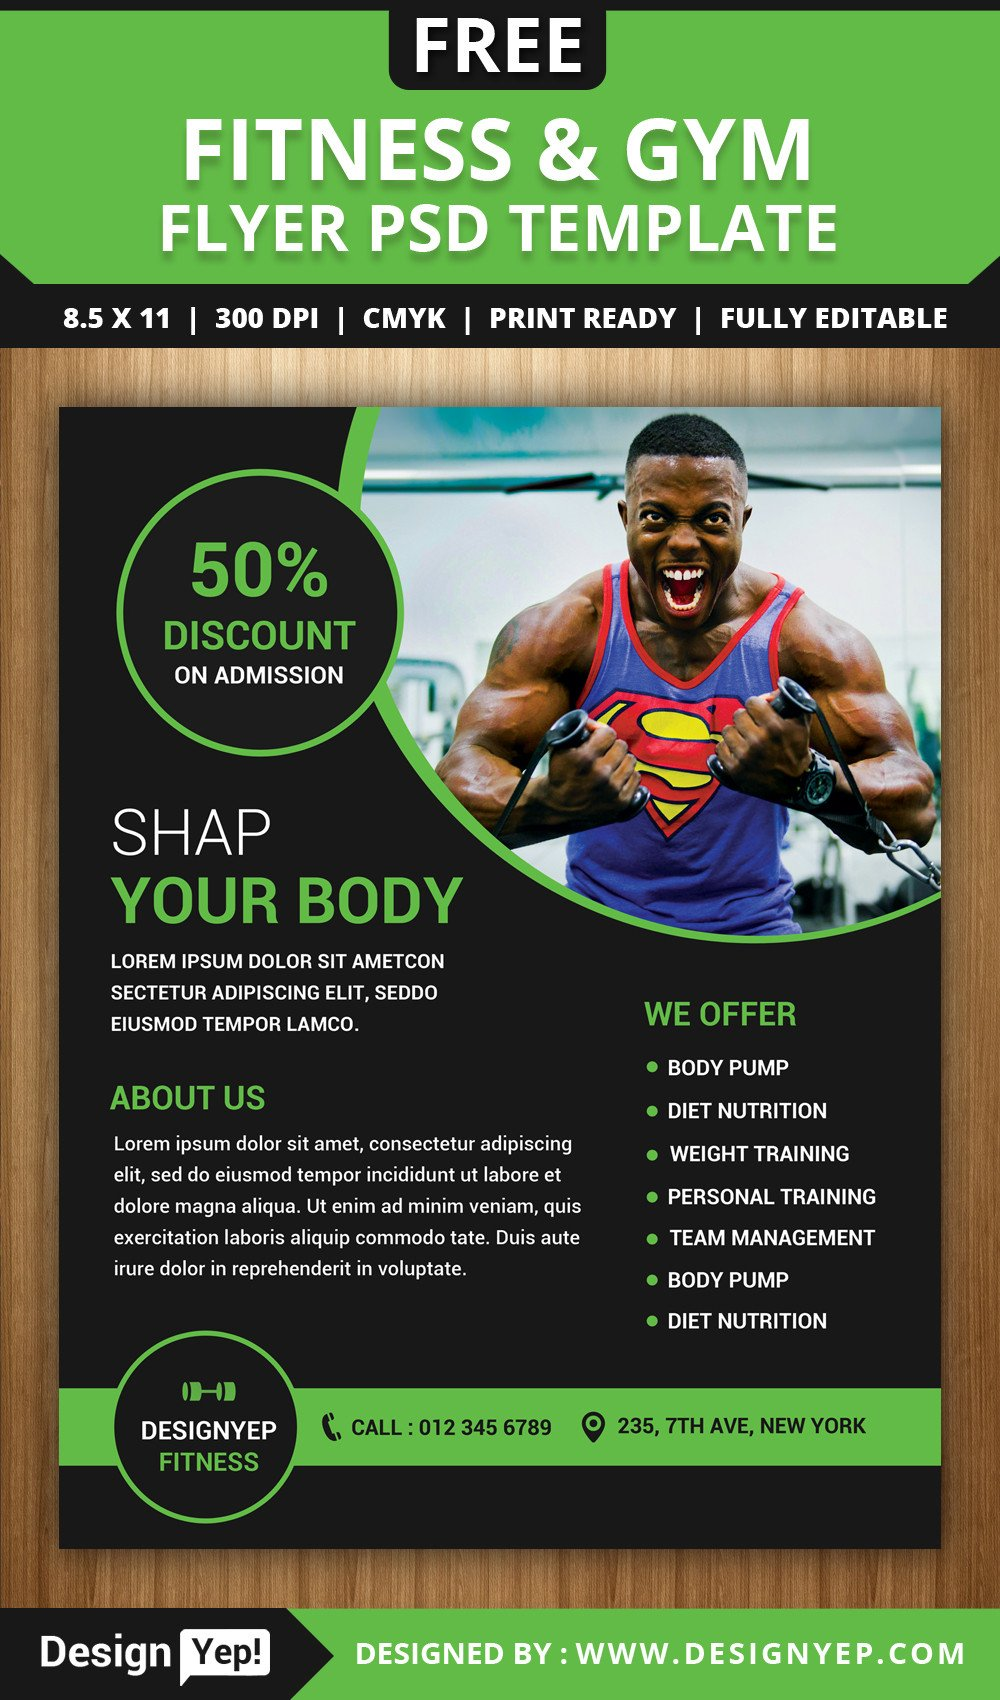 Fitness Flyer Template Free Free Gym and Fitness Flyer Psd Template Designyep